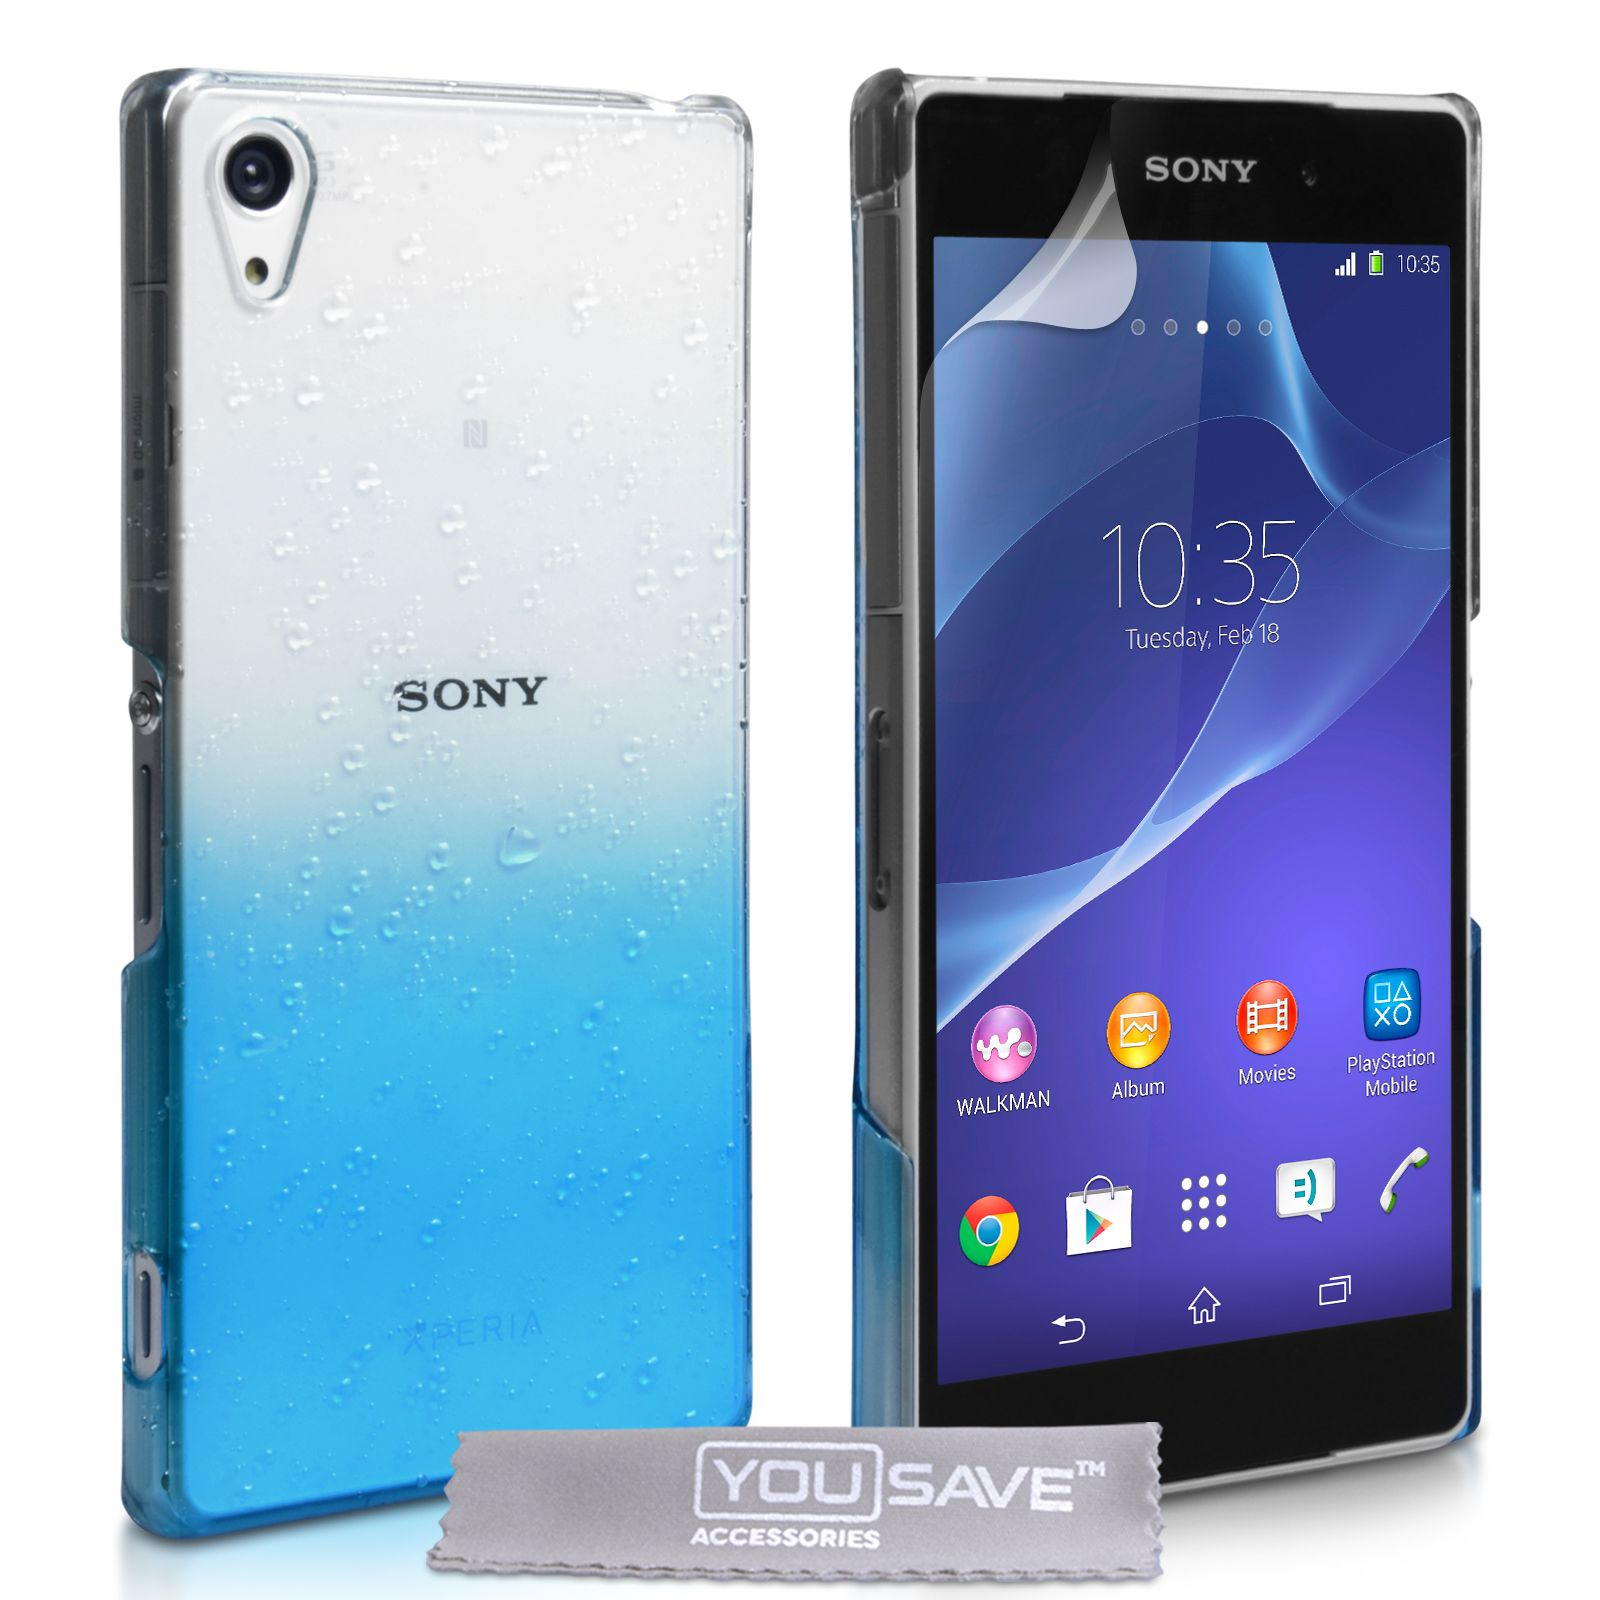 f788a239d141 YouSave Sony Xperia Z2 Raindrop Hard Case - Blue-Clear